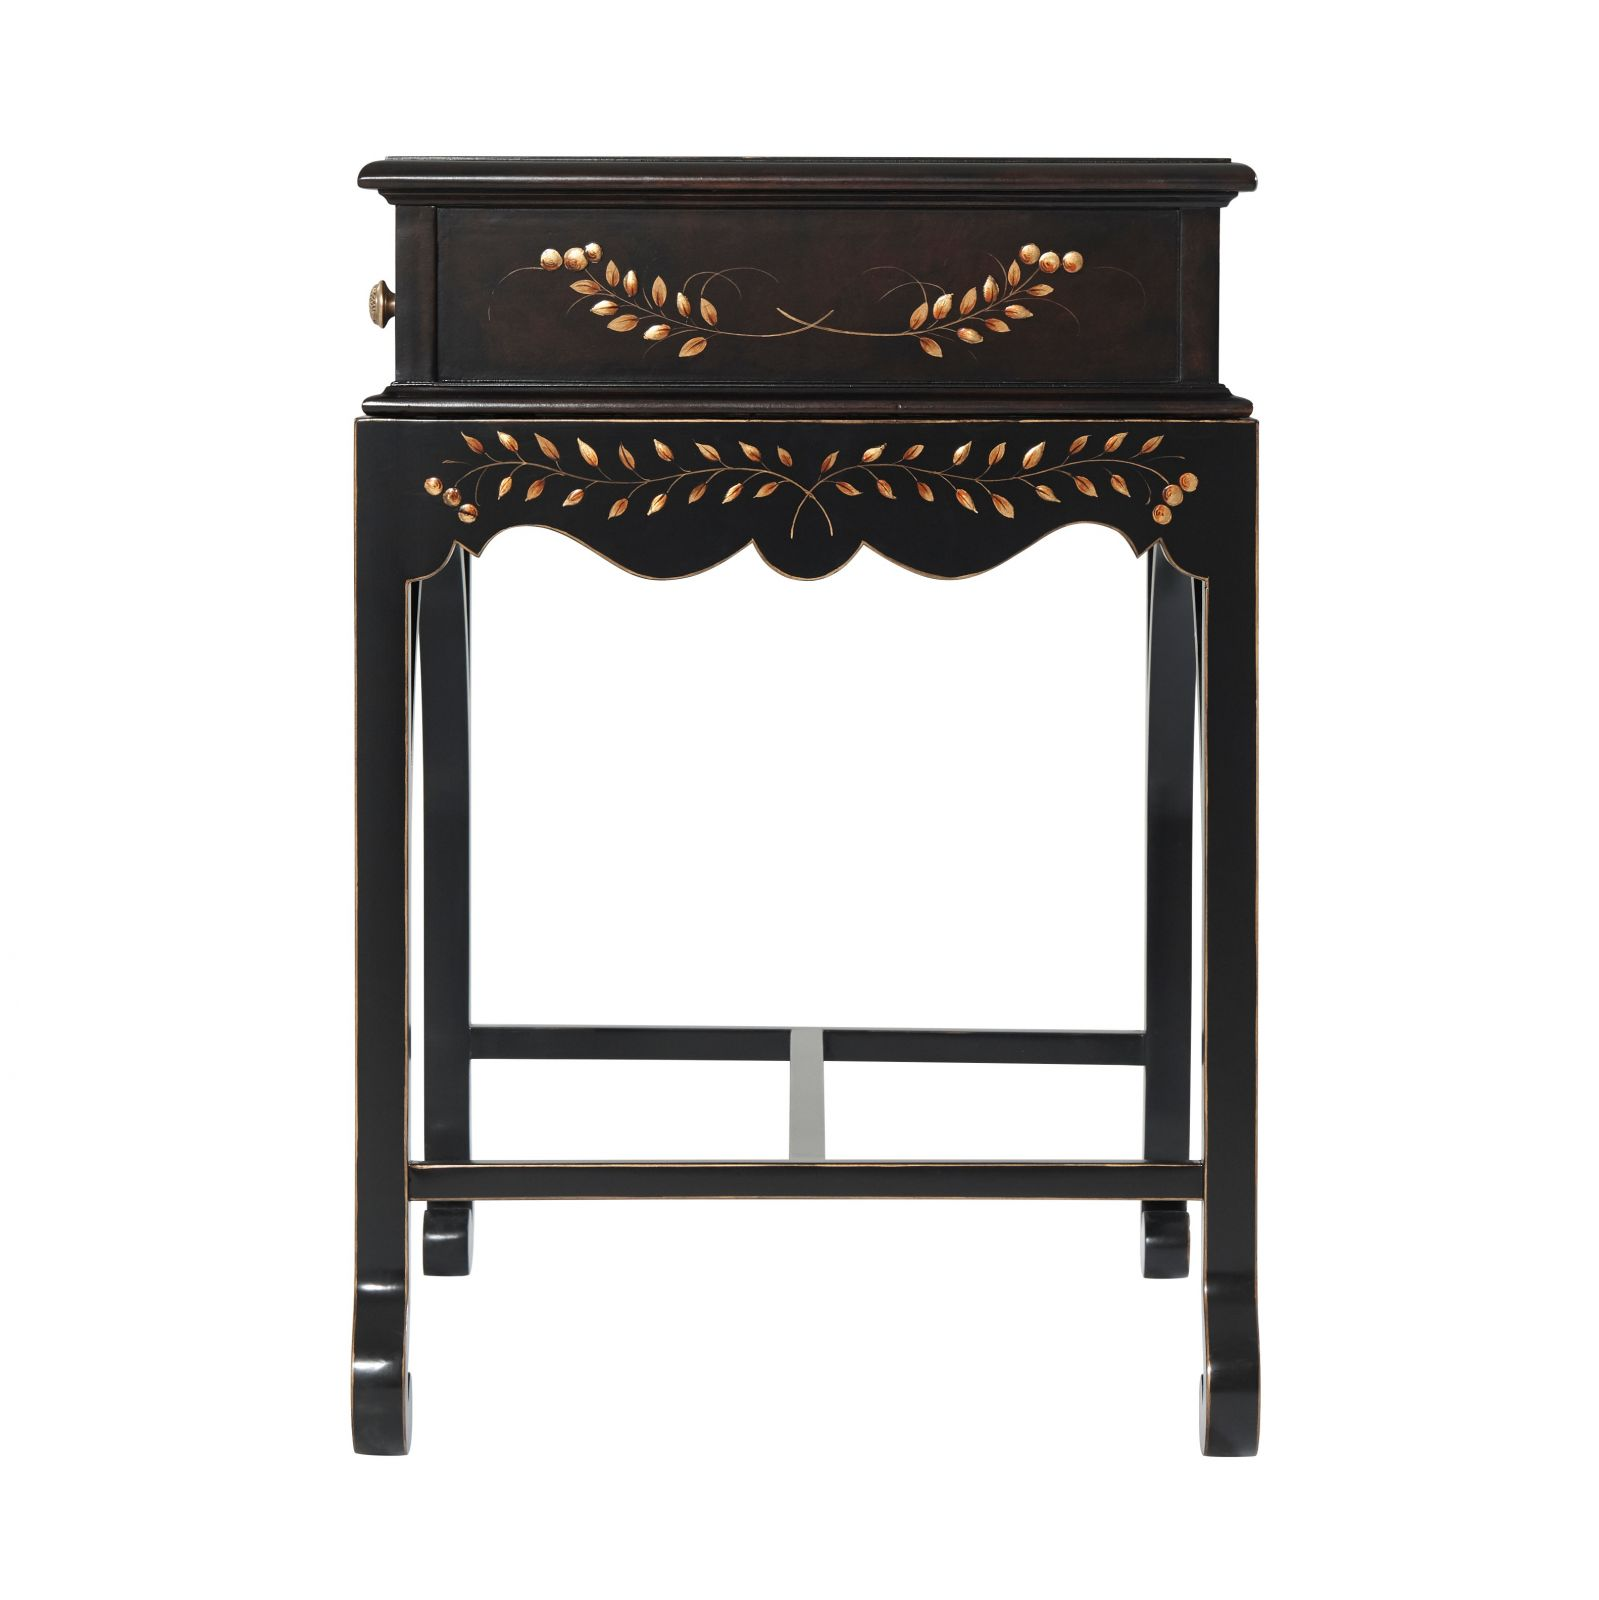 William and Mary 18th-century style side table